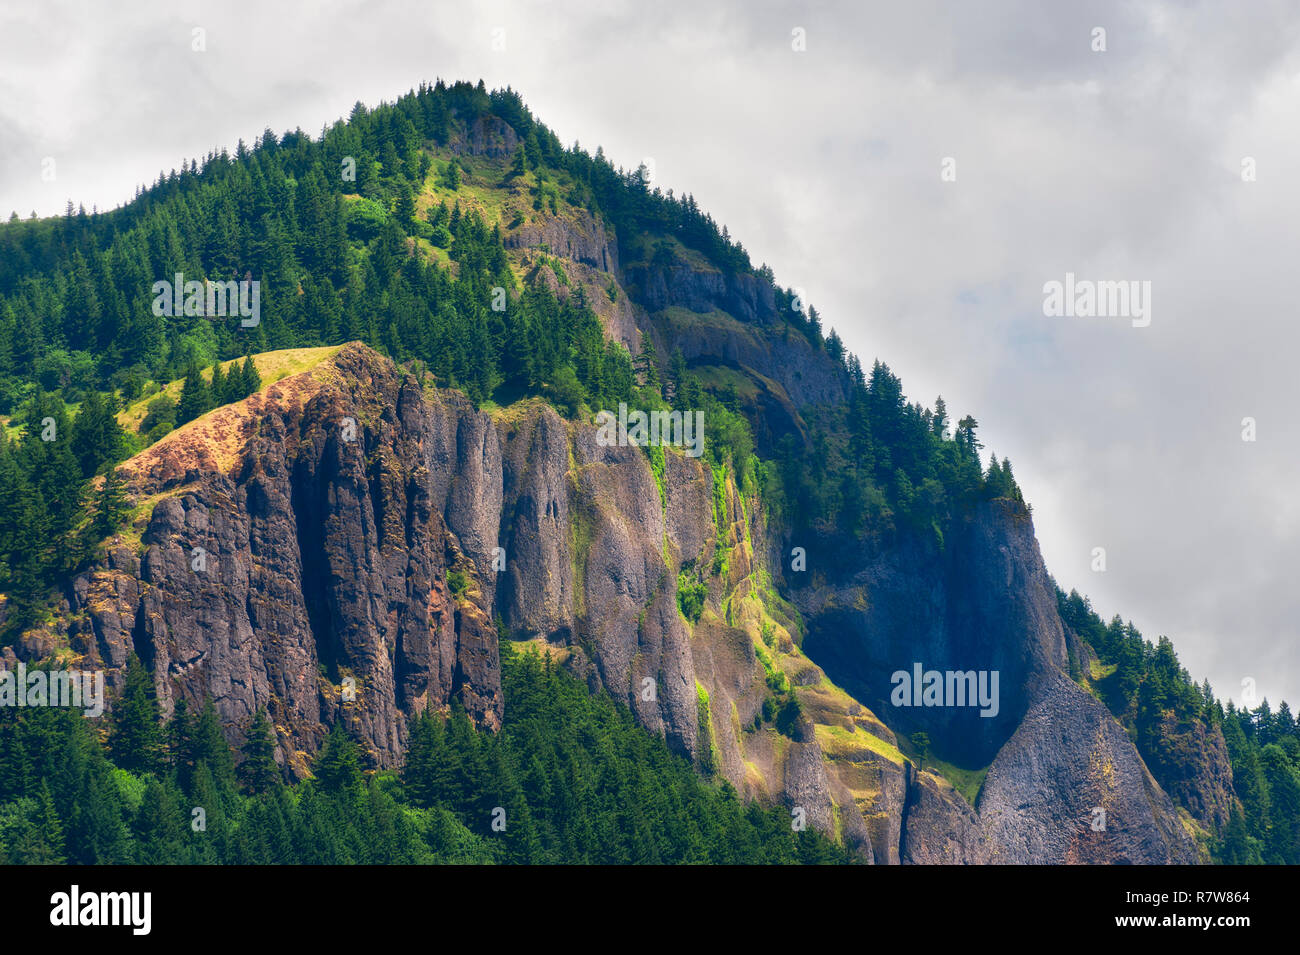 Basalt rock cliffs seen on the Washington side of the Columbia River Gorge. - Stock Image